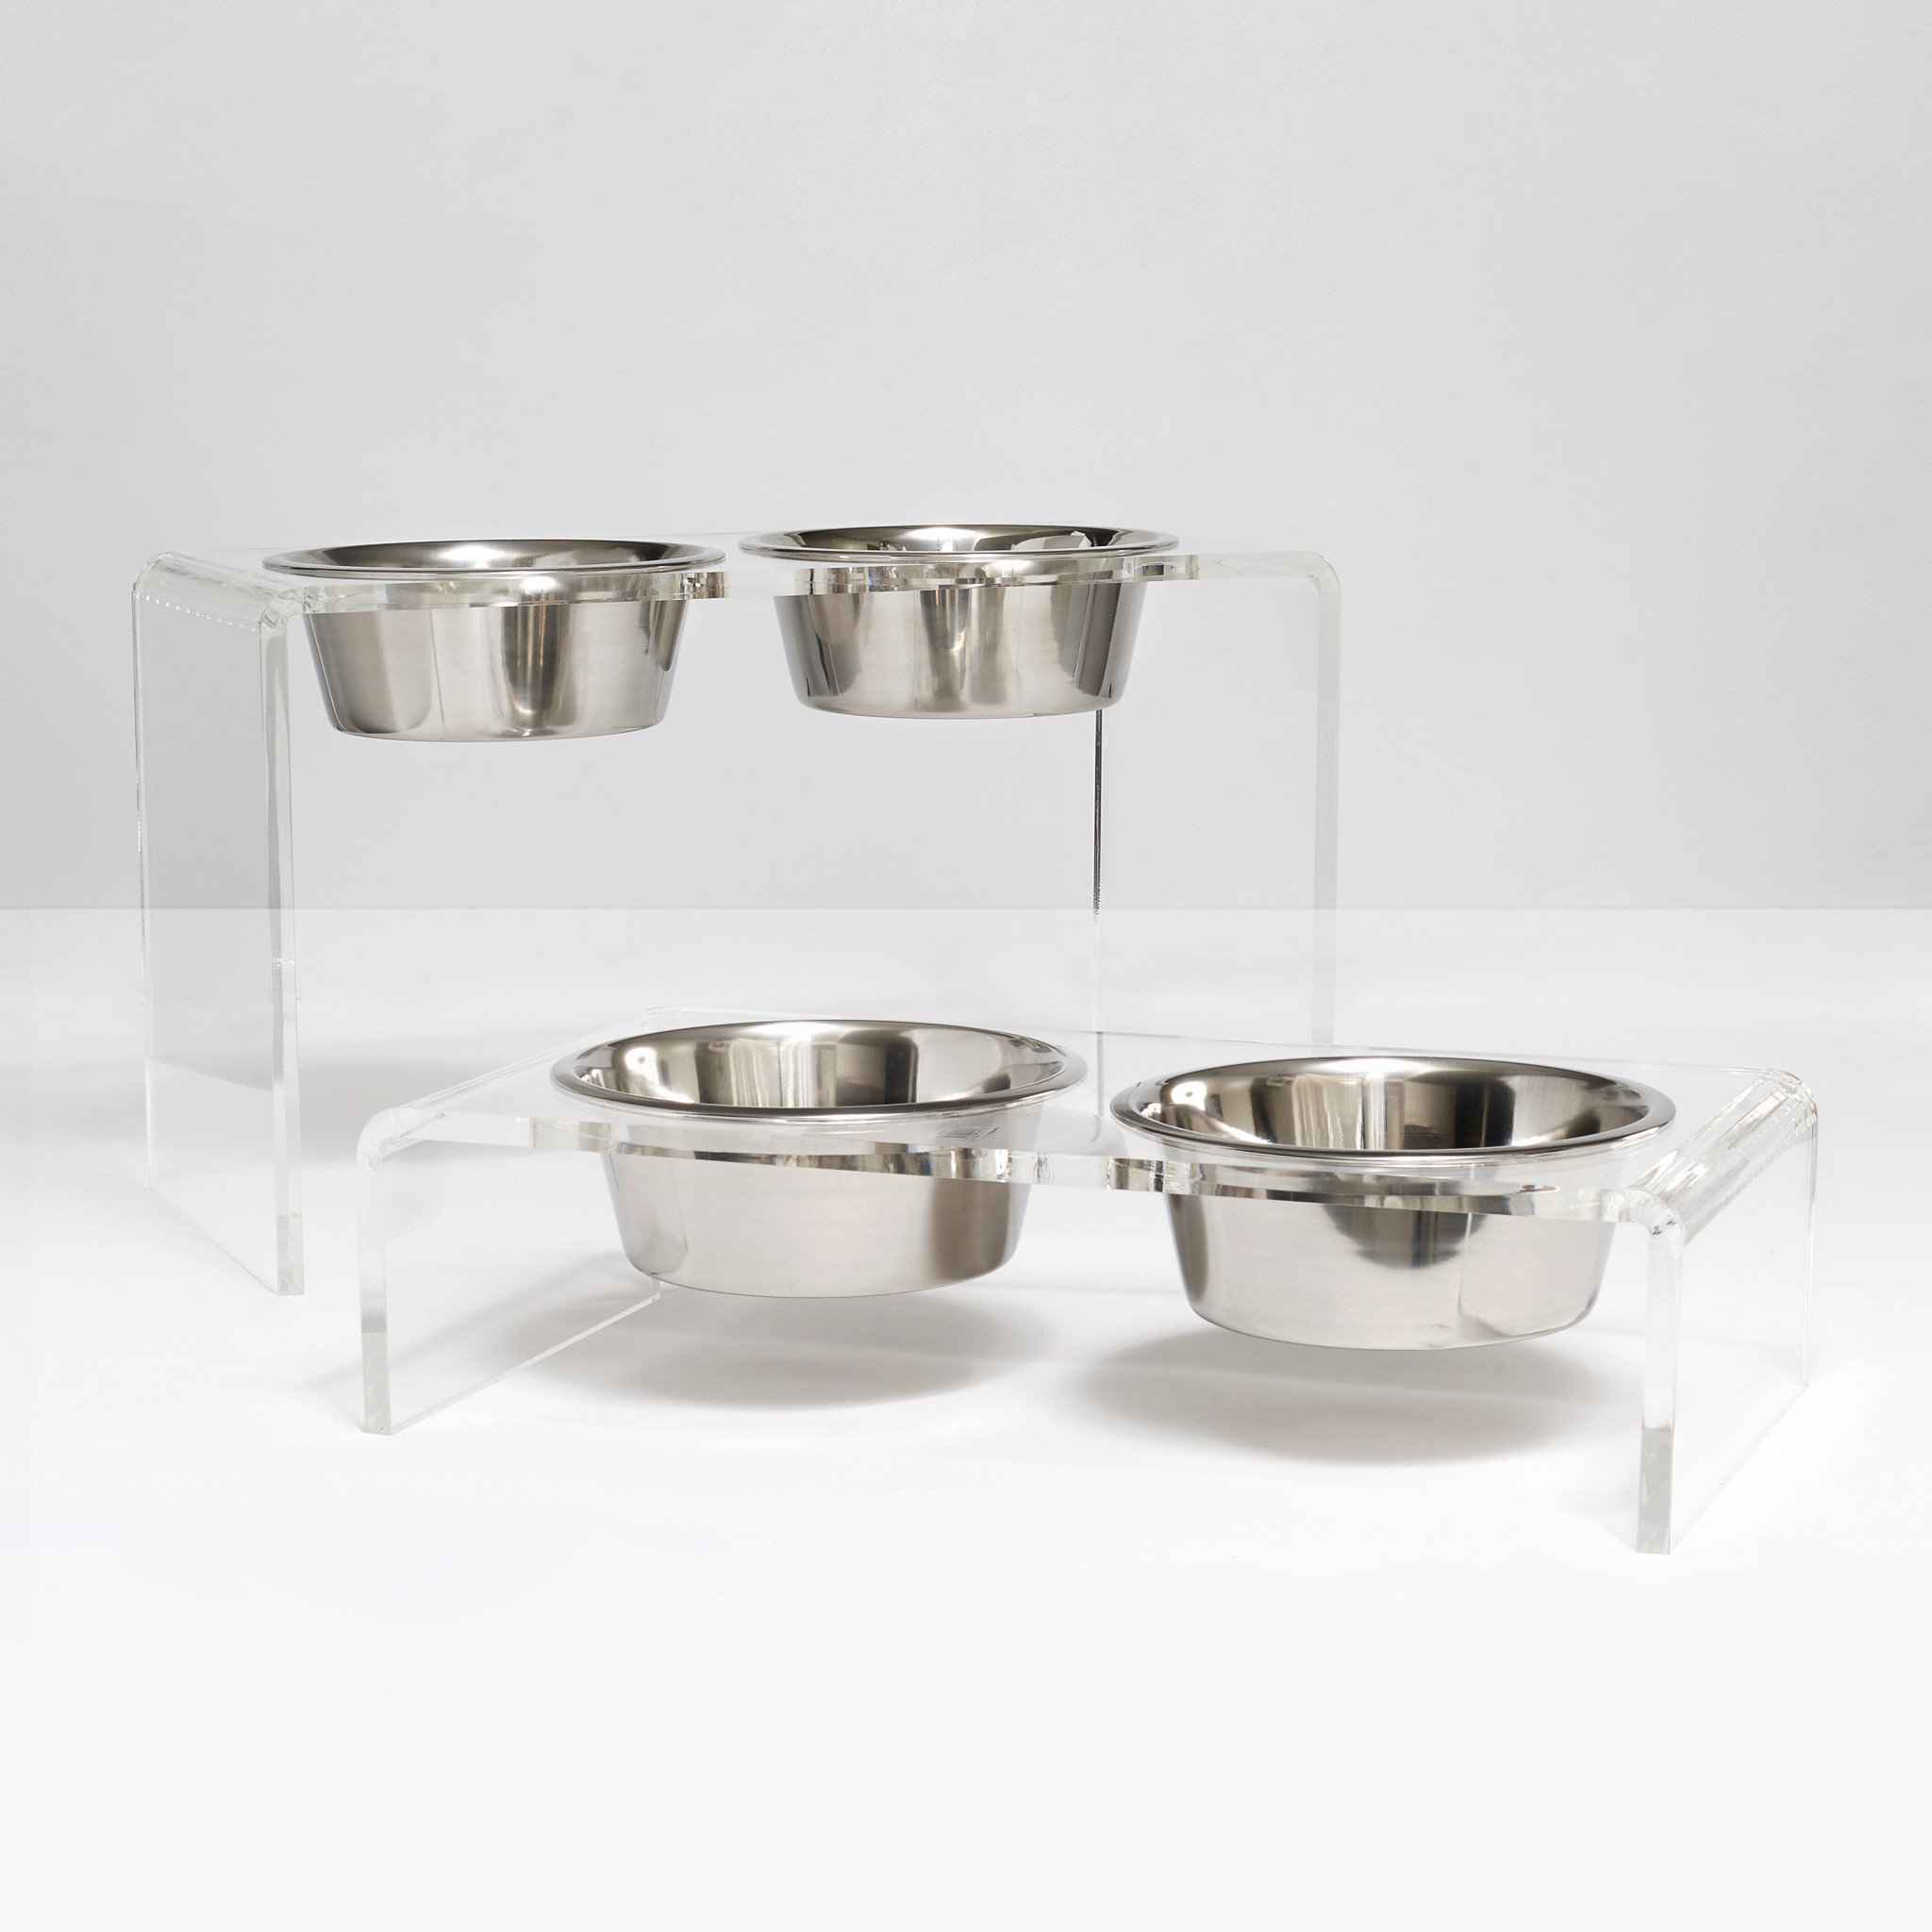 clear acrylic dog bowl stand modern simple clear lucite chic Petco pet feeder clearhomedesign.com dish appear cheap